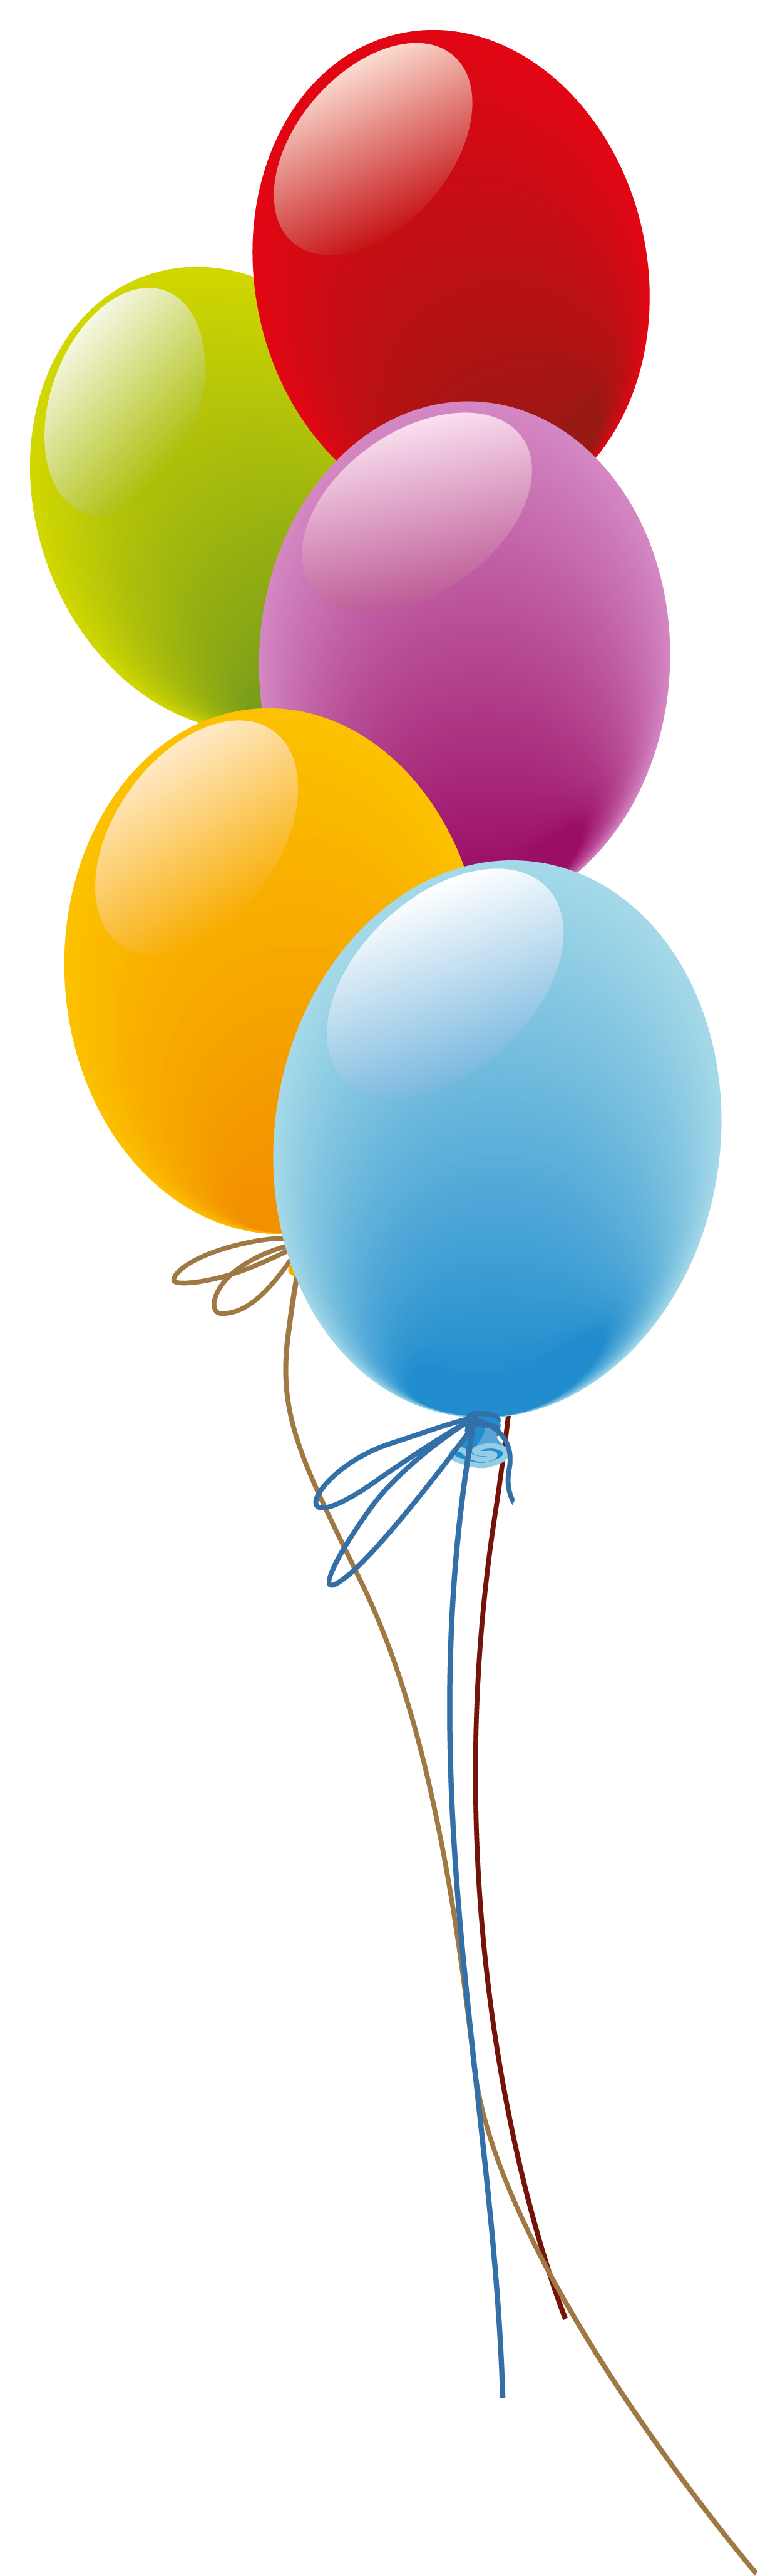 Drawn balloon string clipart. Png images gallery